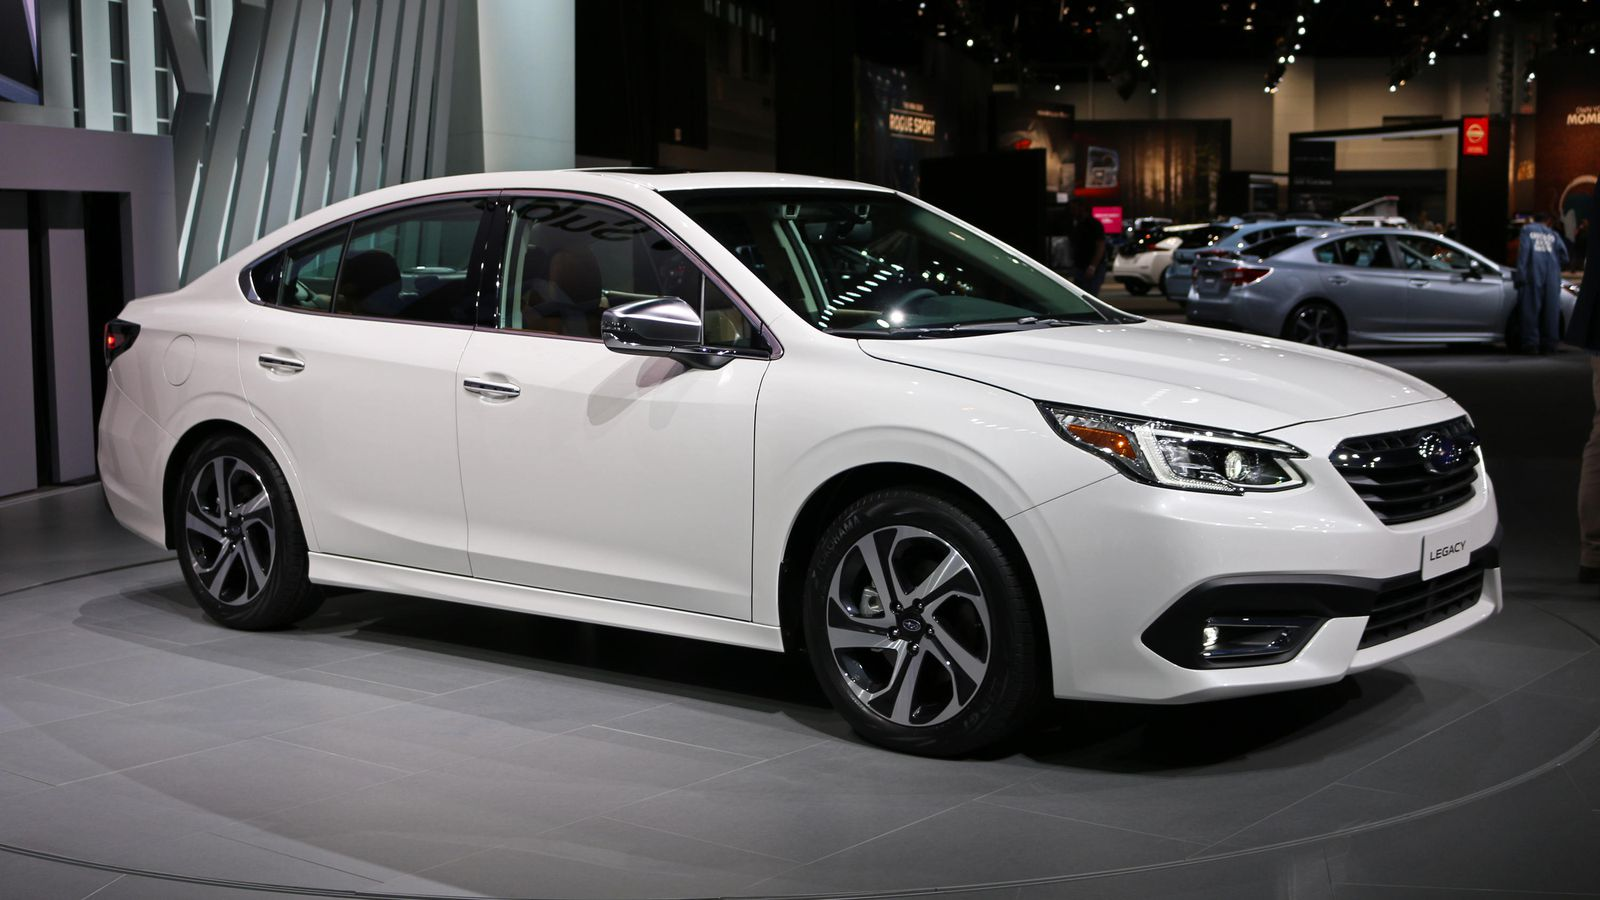 80 The 2020 Subaru Legacy Turbo Gt Style